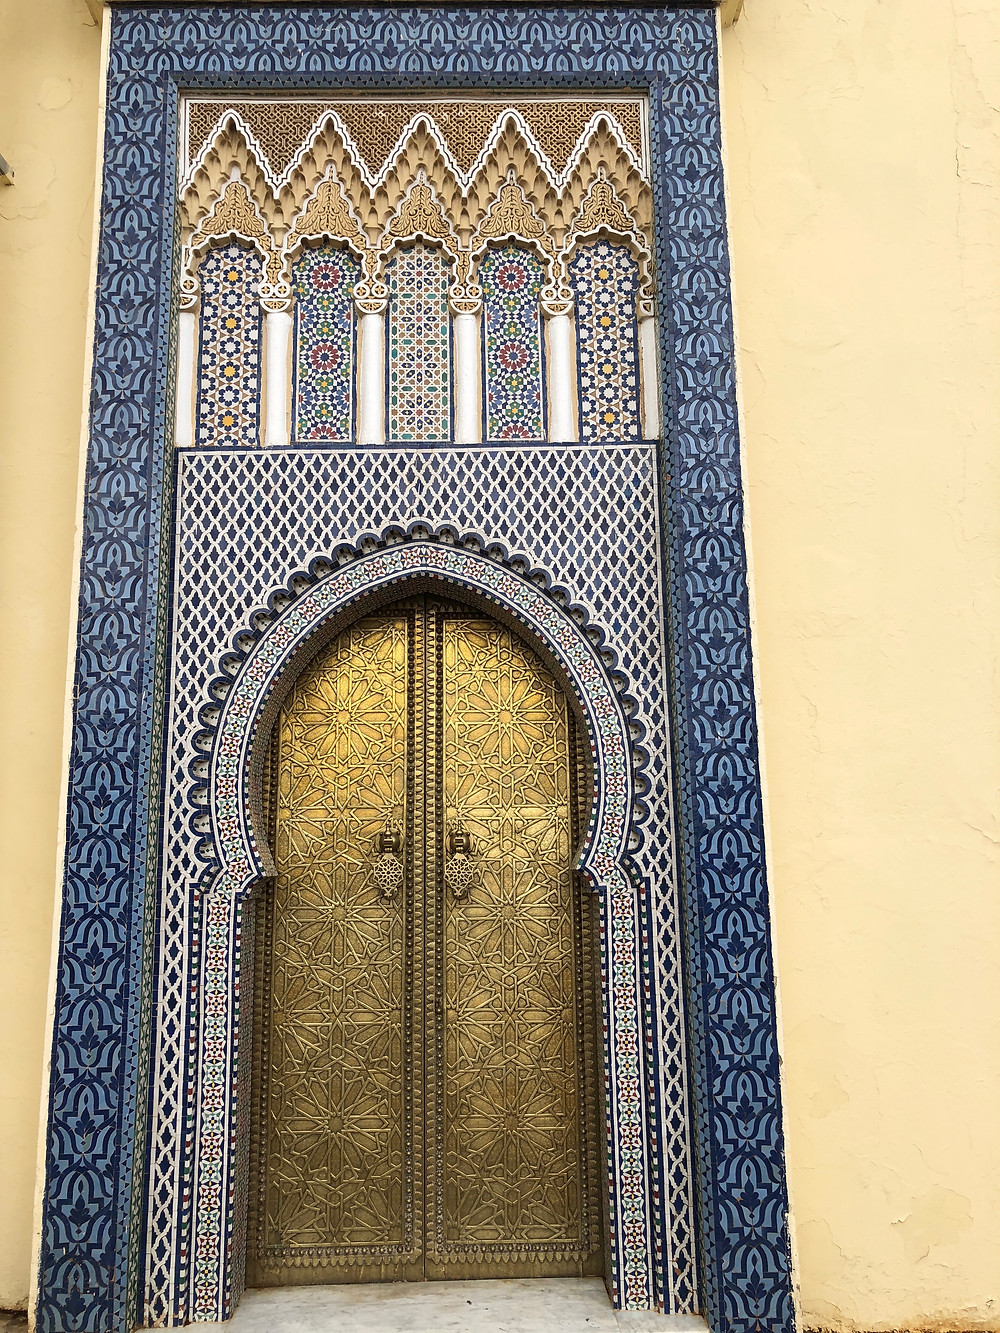 The Palace Gates in Fes